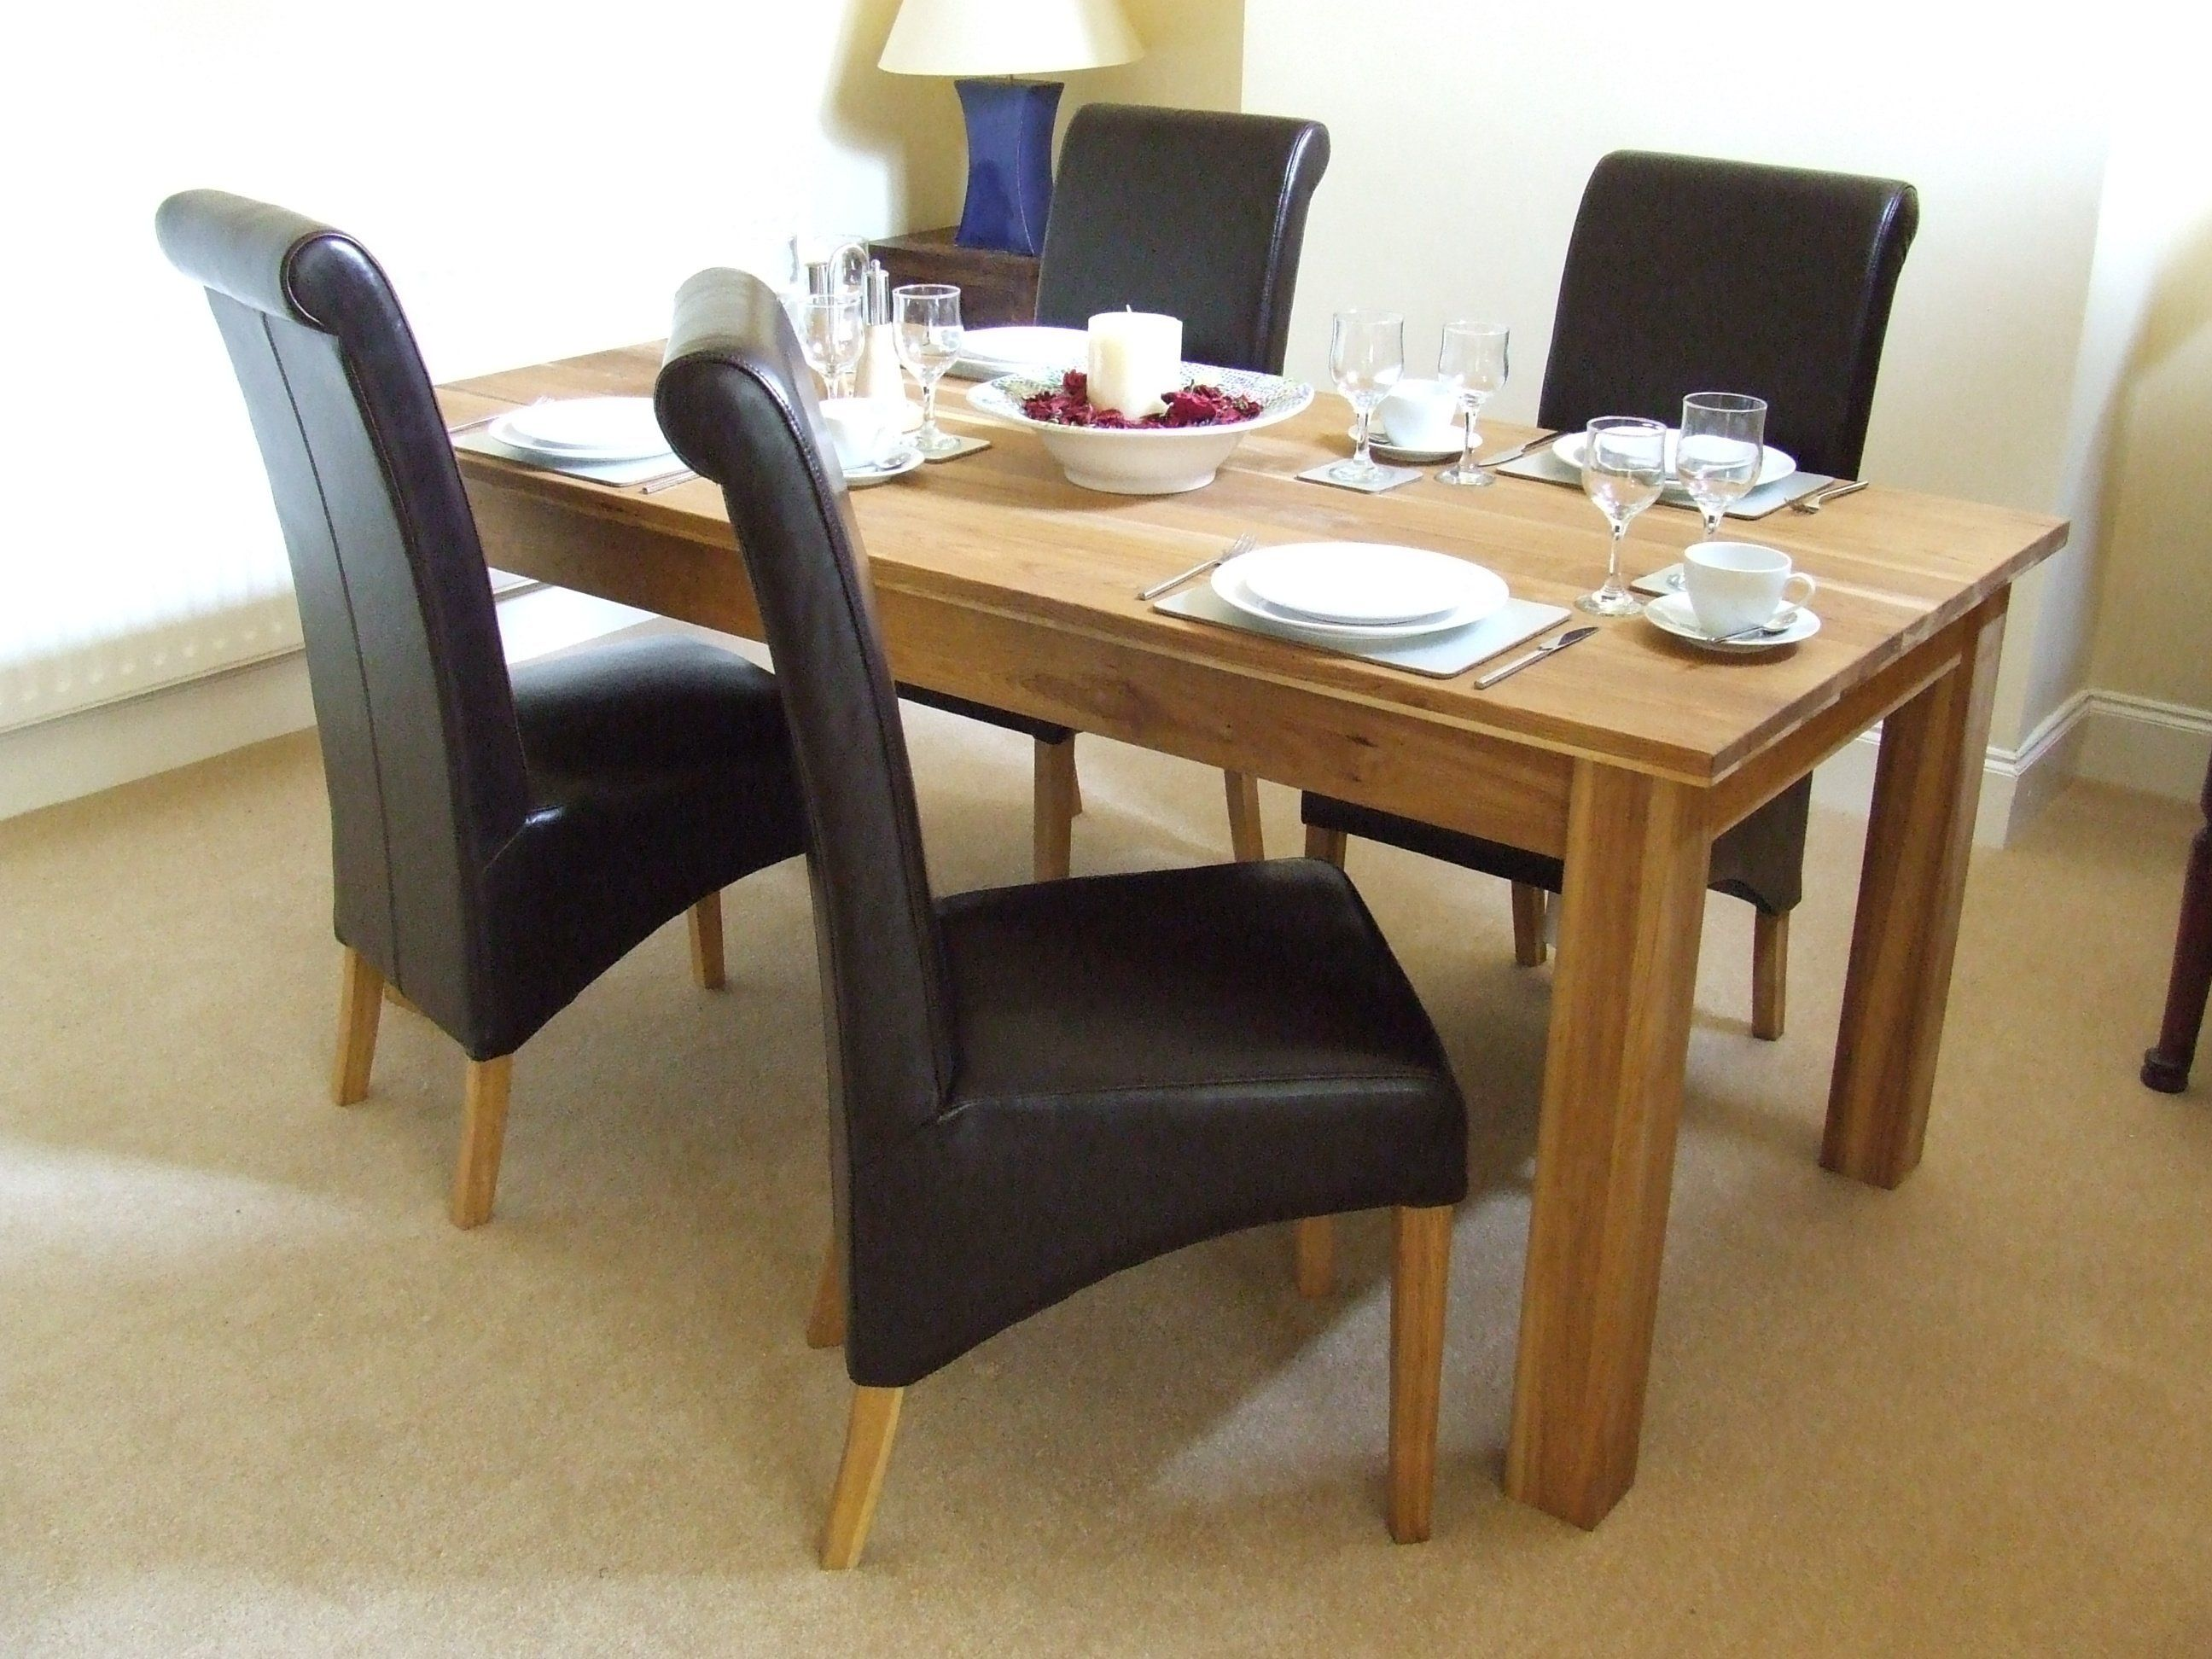 Solid Oak Dining Table And Chairs  Go To Chinesefurnitureshop Glamorous Oak Dining Room Furniture Decorating Inspiration